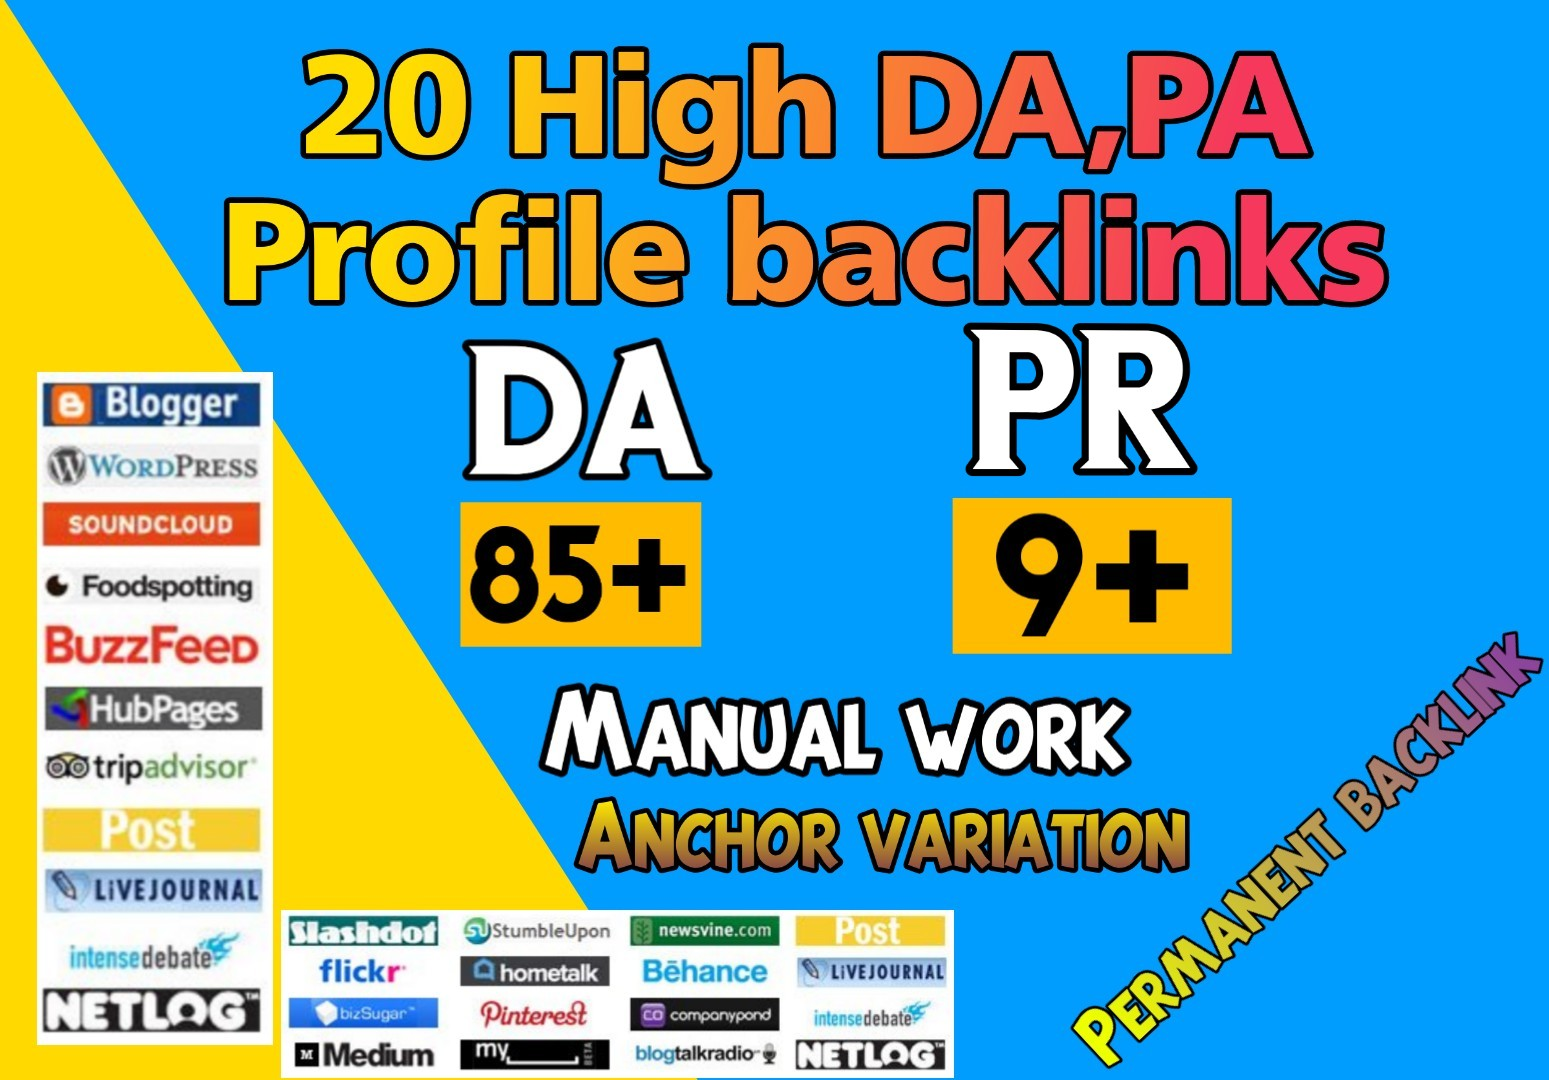 Effective 20 dofollow High DA PA Profile backlinks